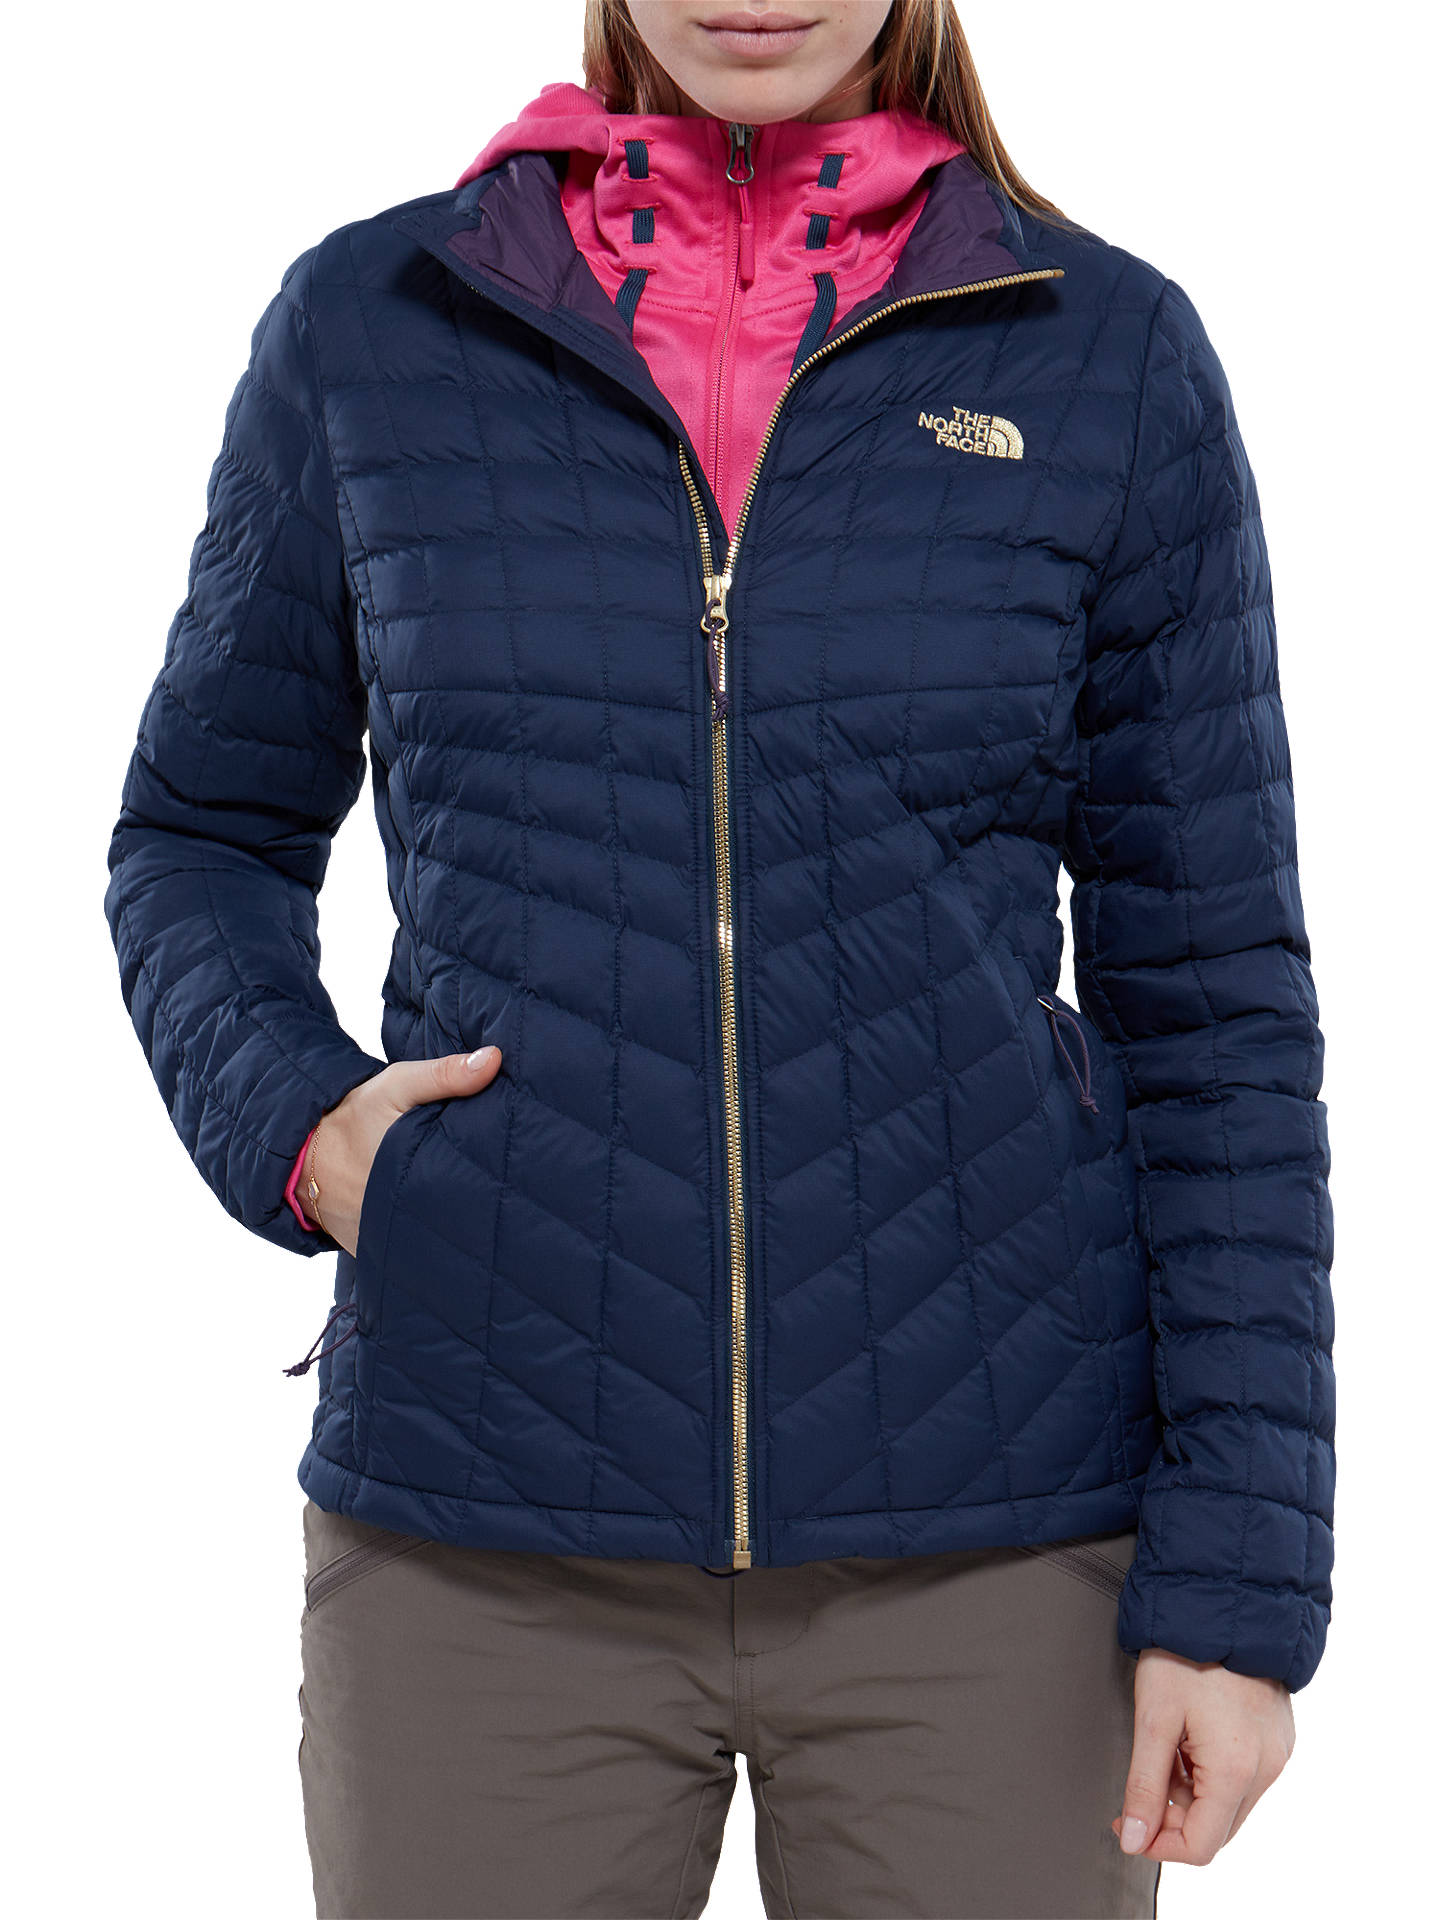 9ee949d9b The North Face Thermoball Zip-In Women's Insulated Jacket at John ...